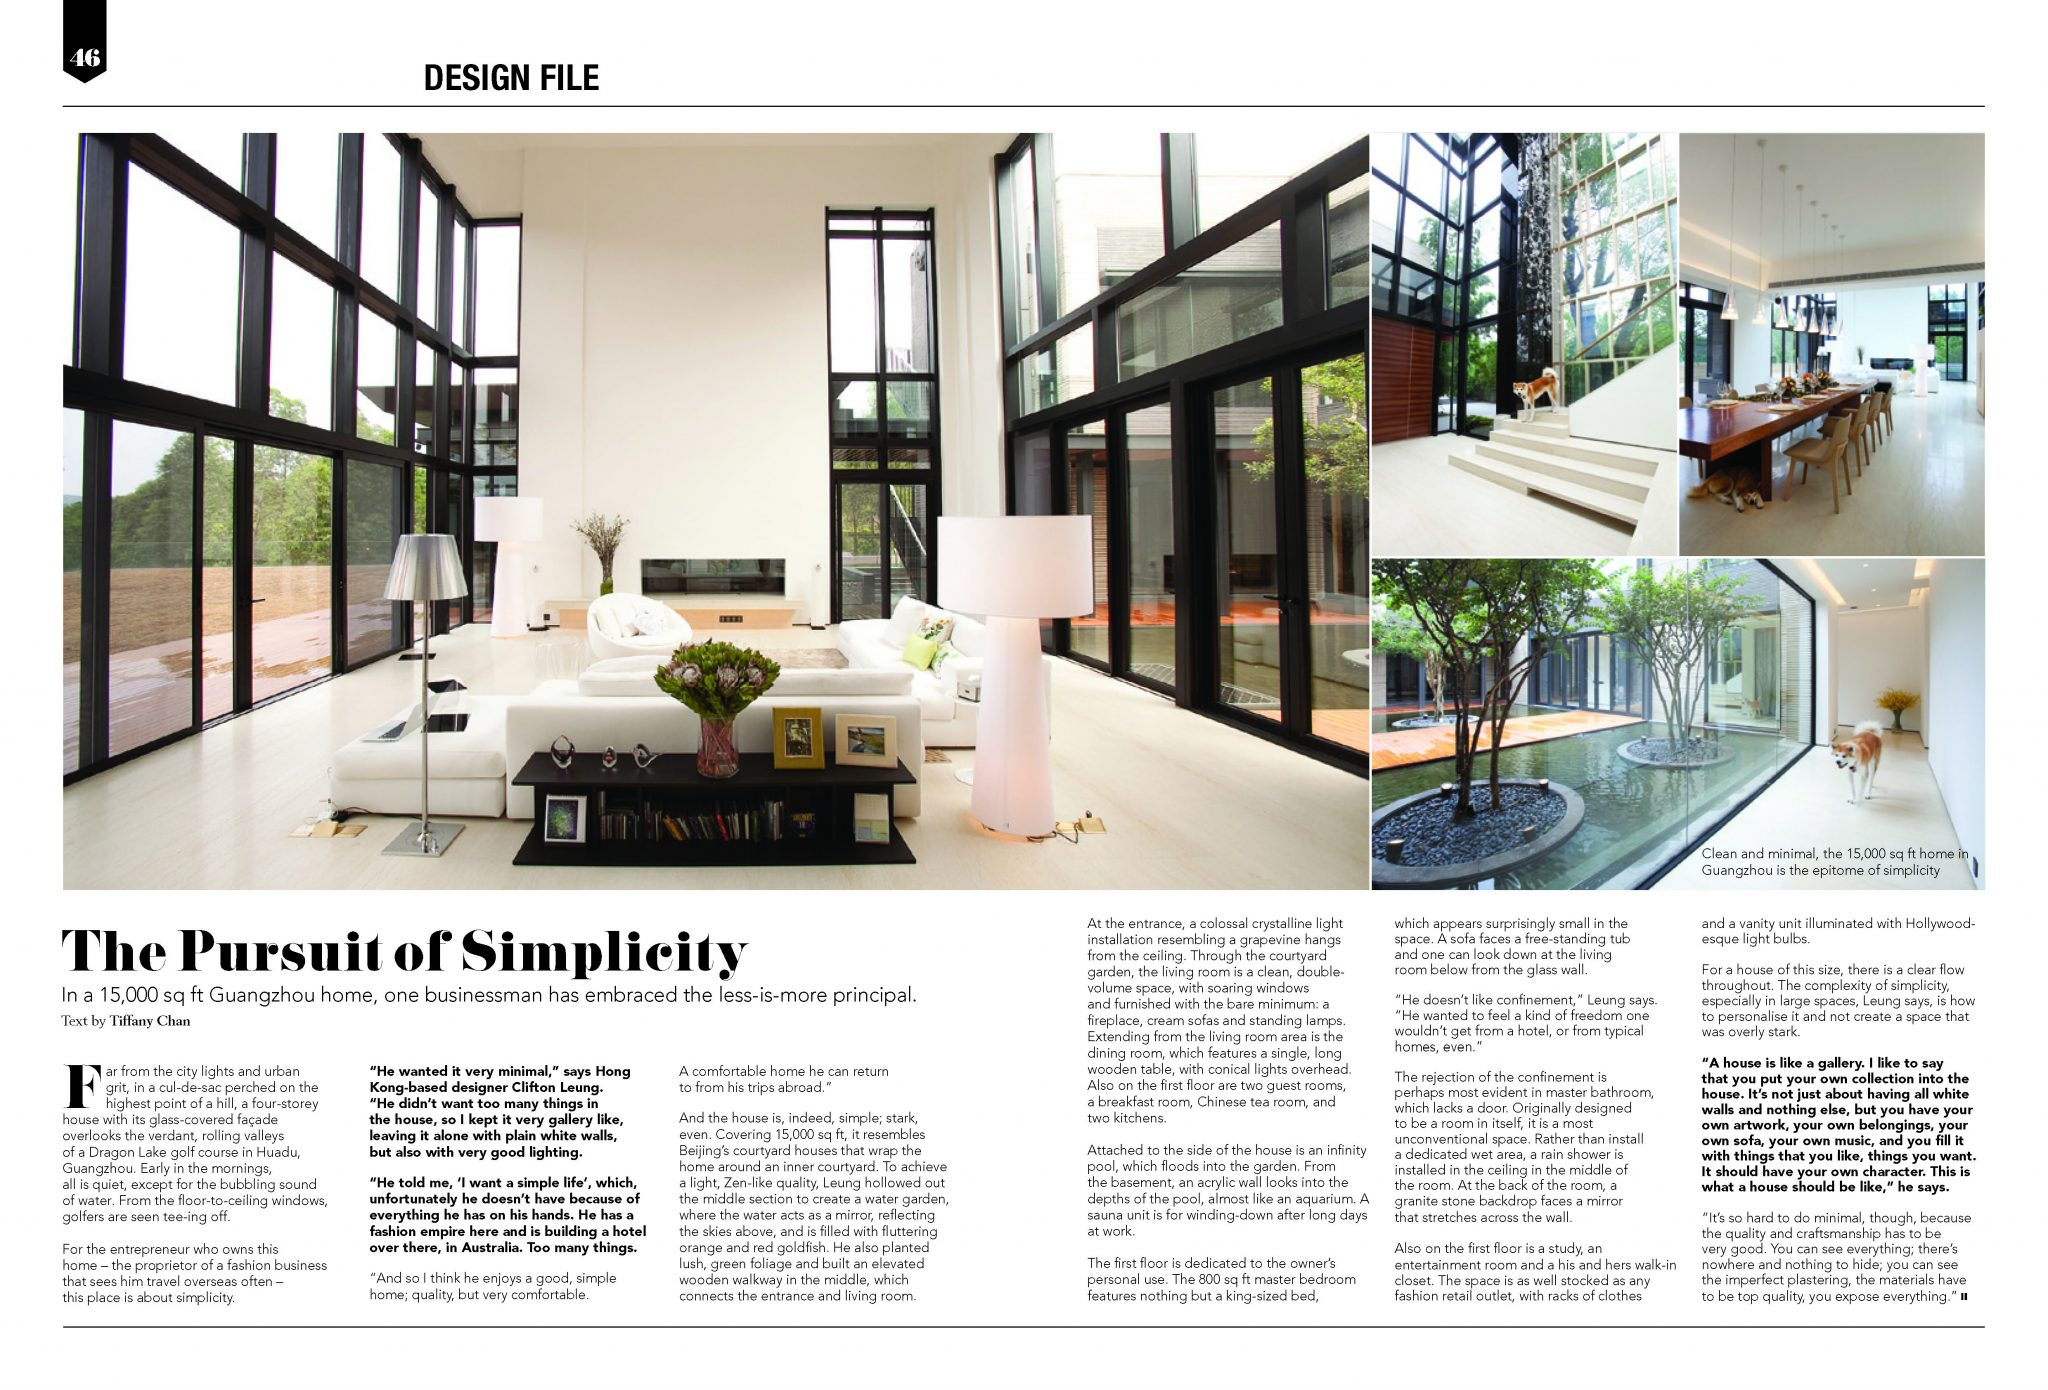 The Pursuit of Simplicity | Crave Magazine | Sept 2015